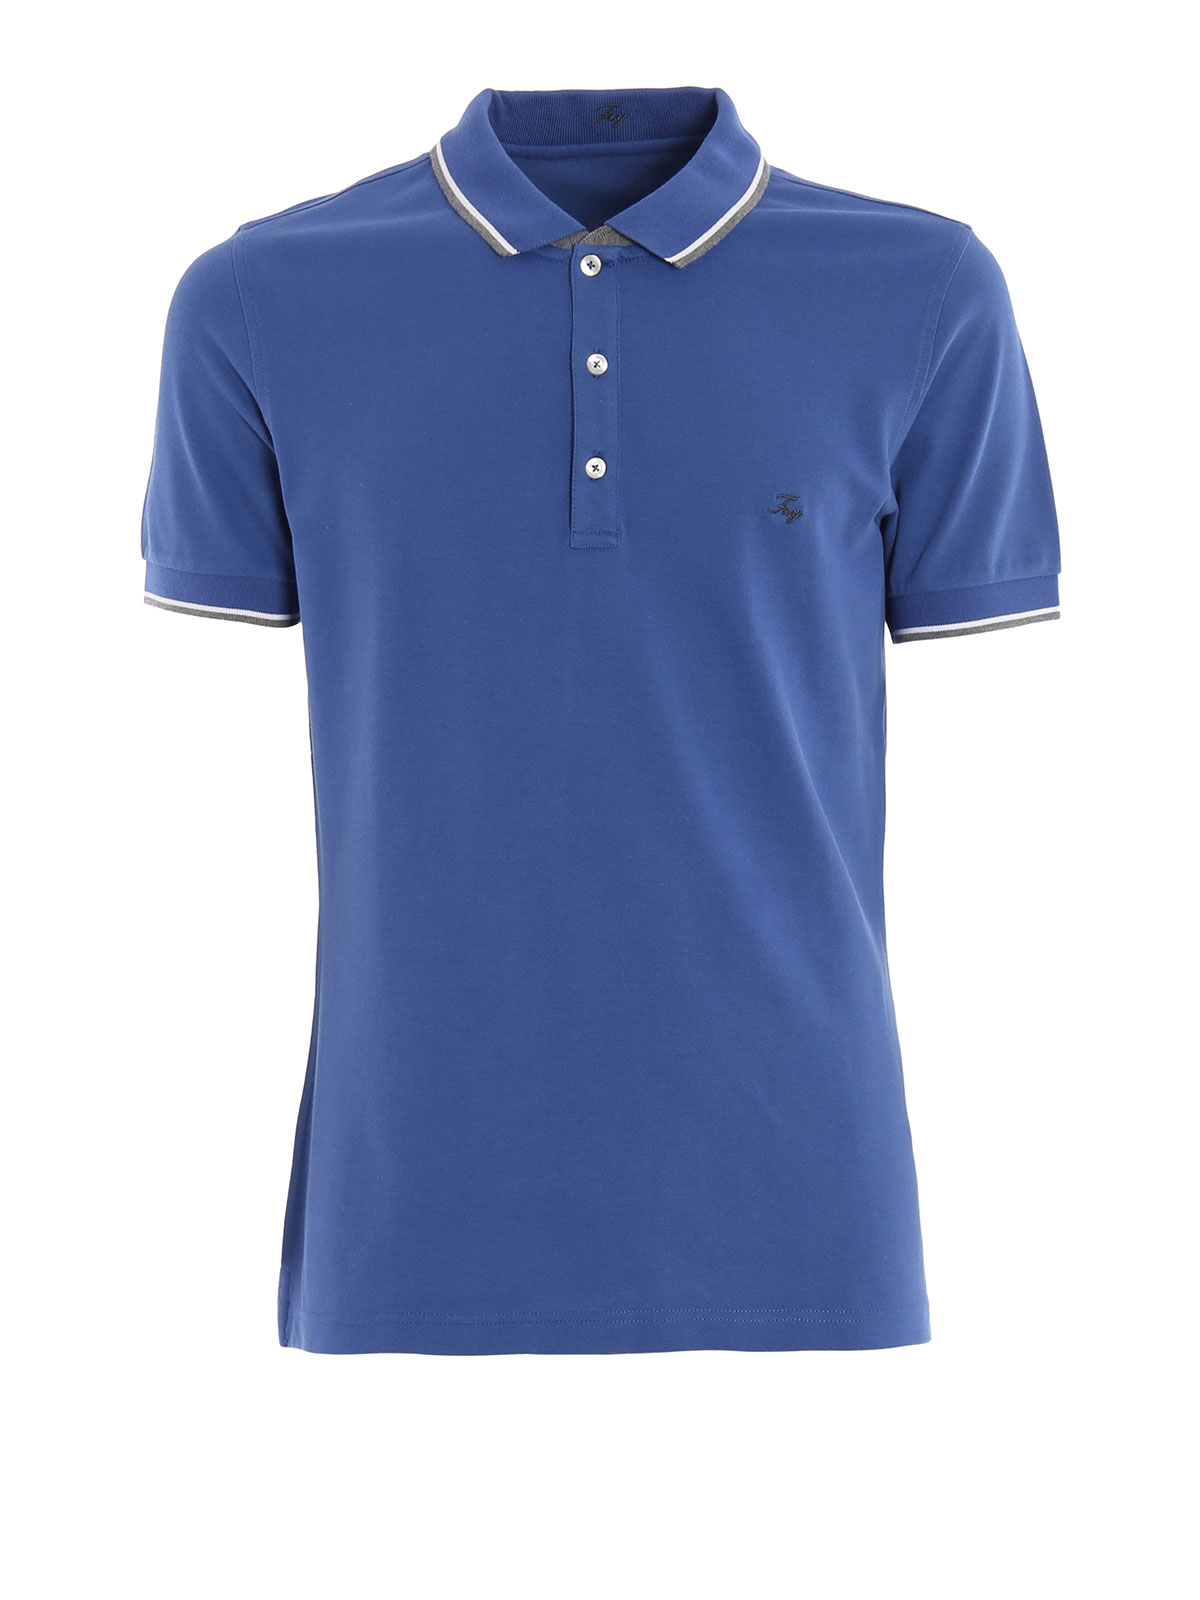 Polo piqu logo ricamato fay polo ikrix for Polo shirts with logos